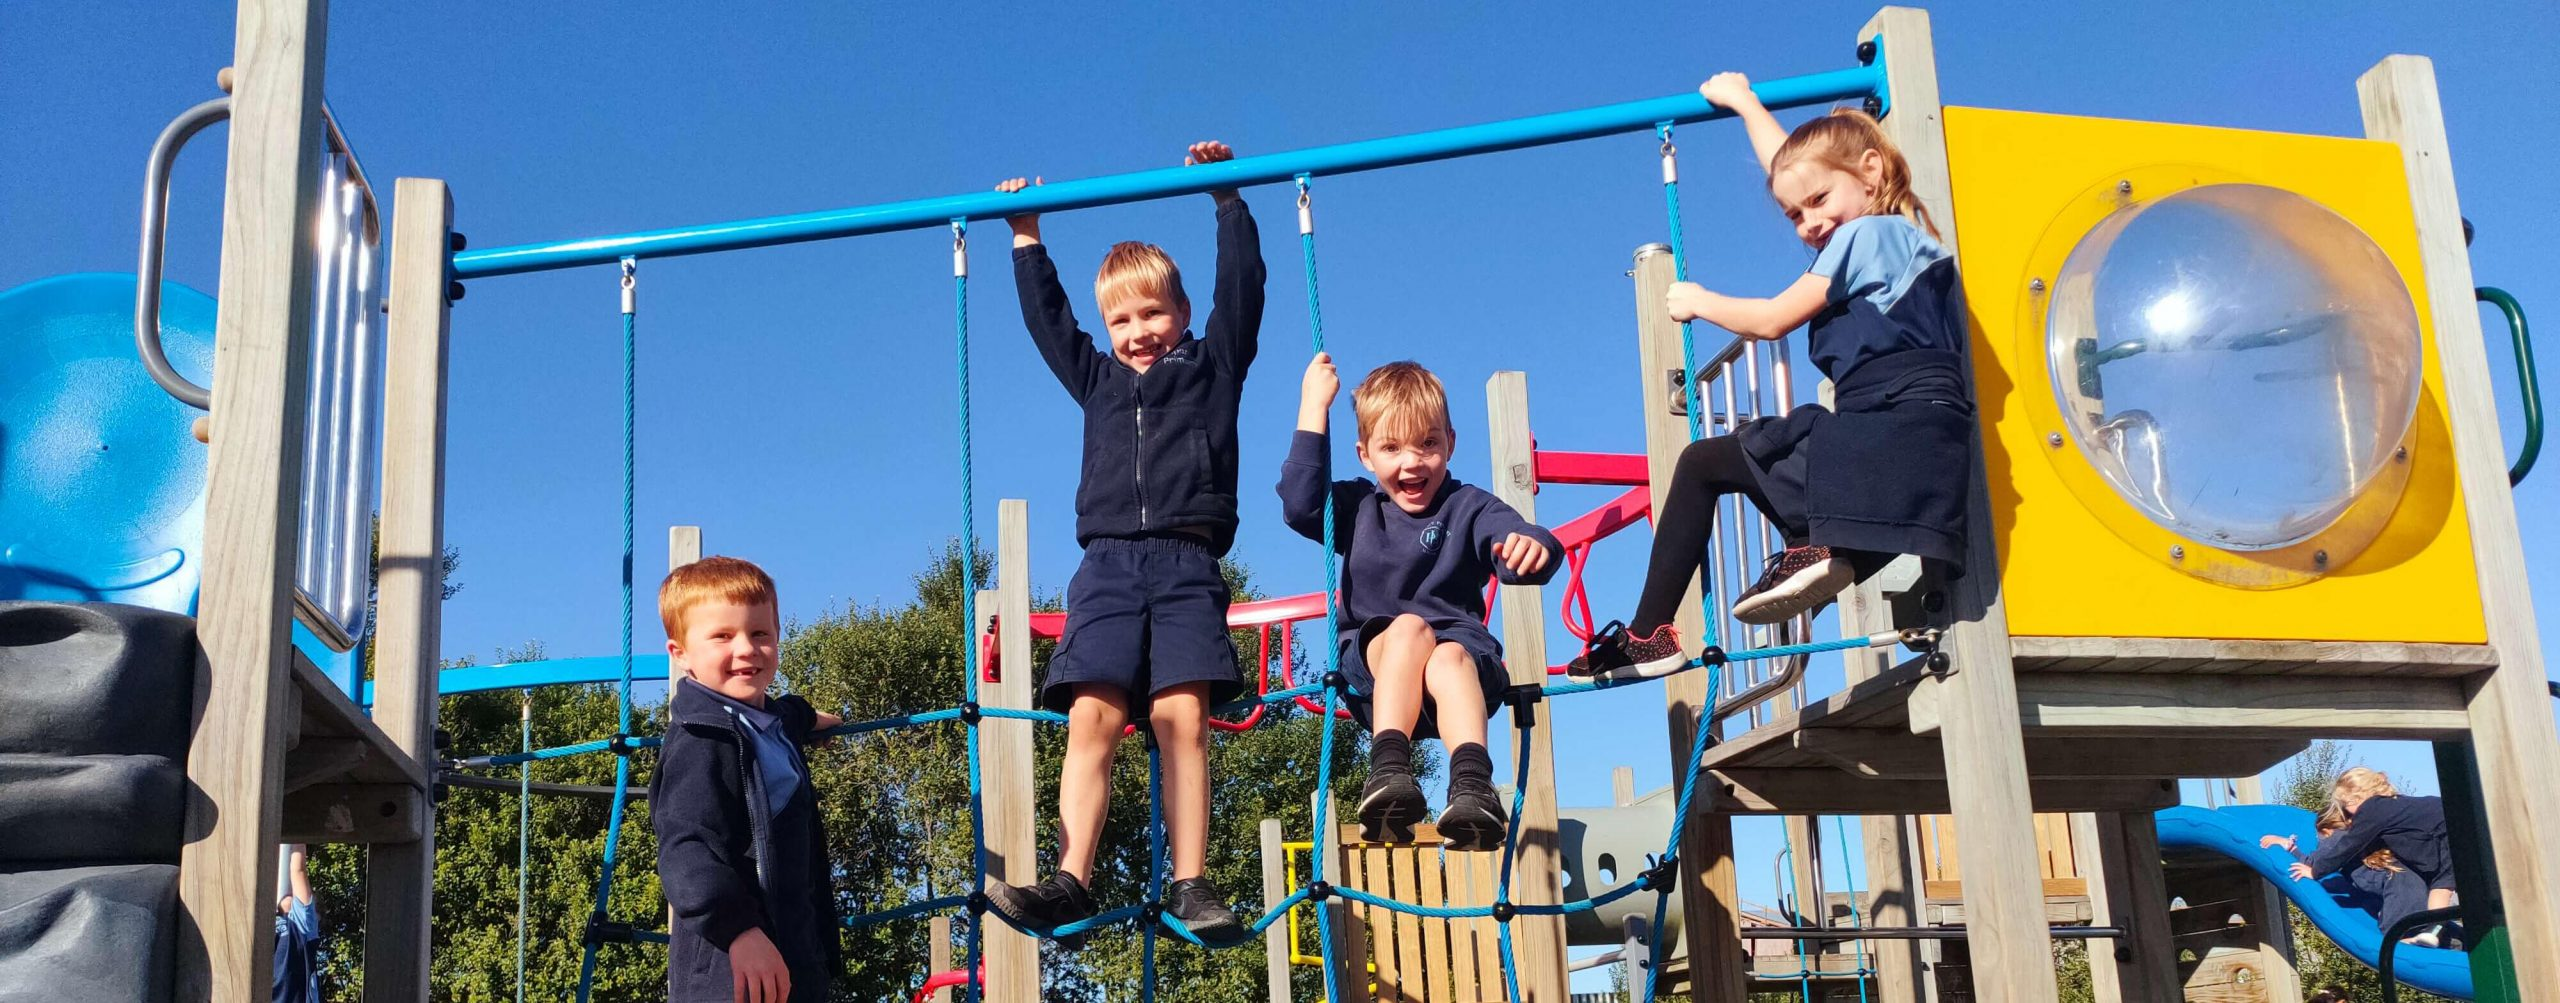 4 Papanui Primary students playing on climbing ropes